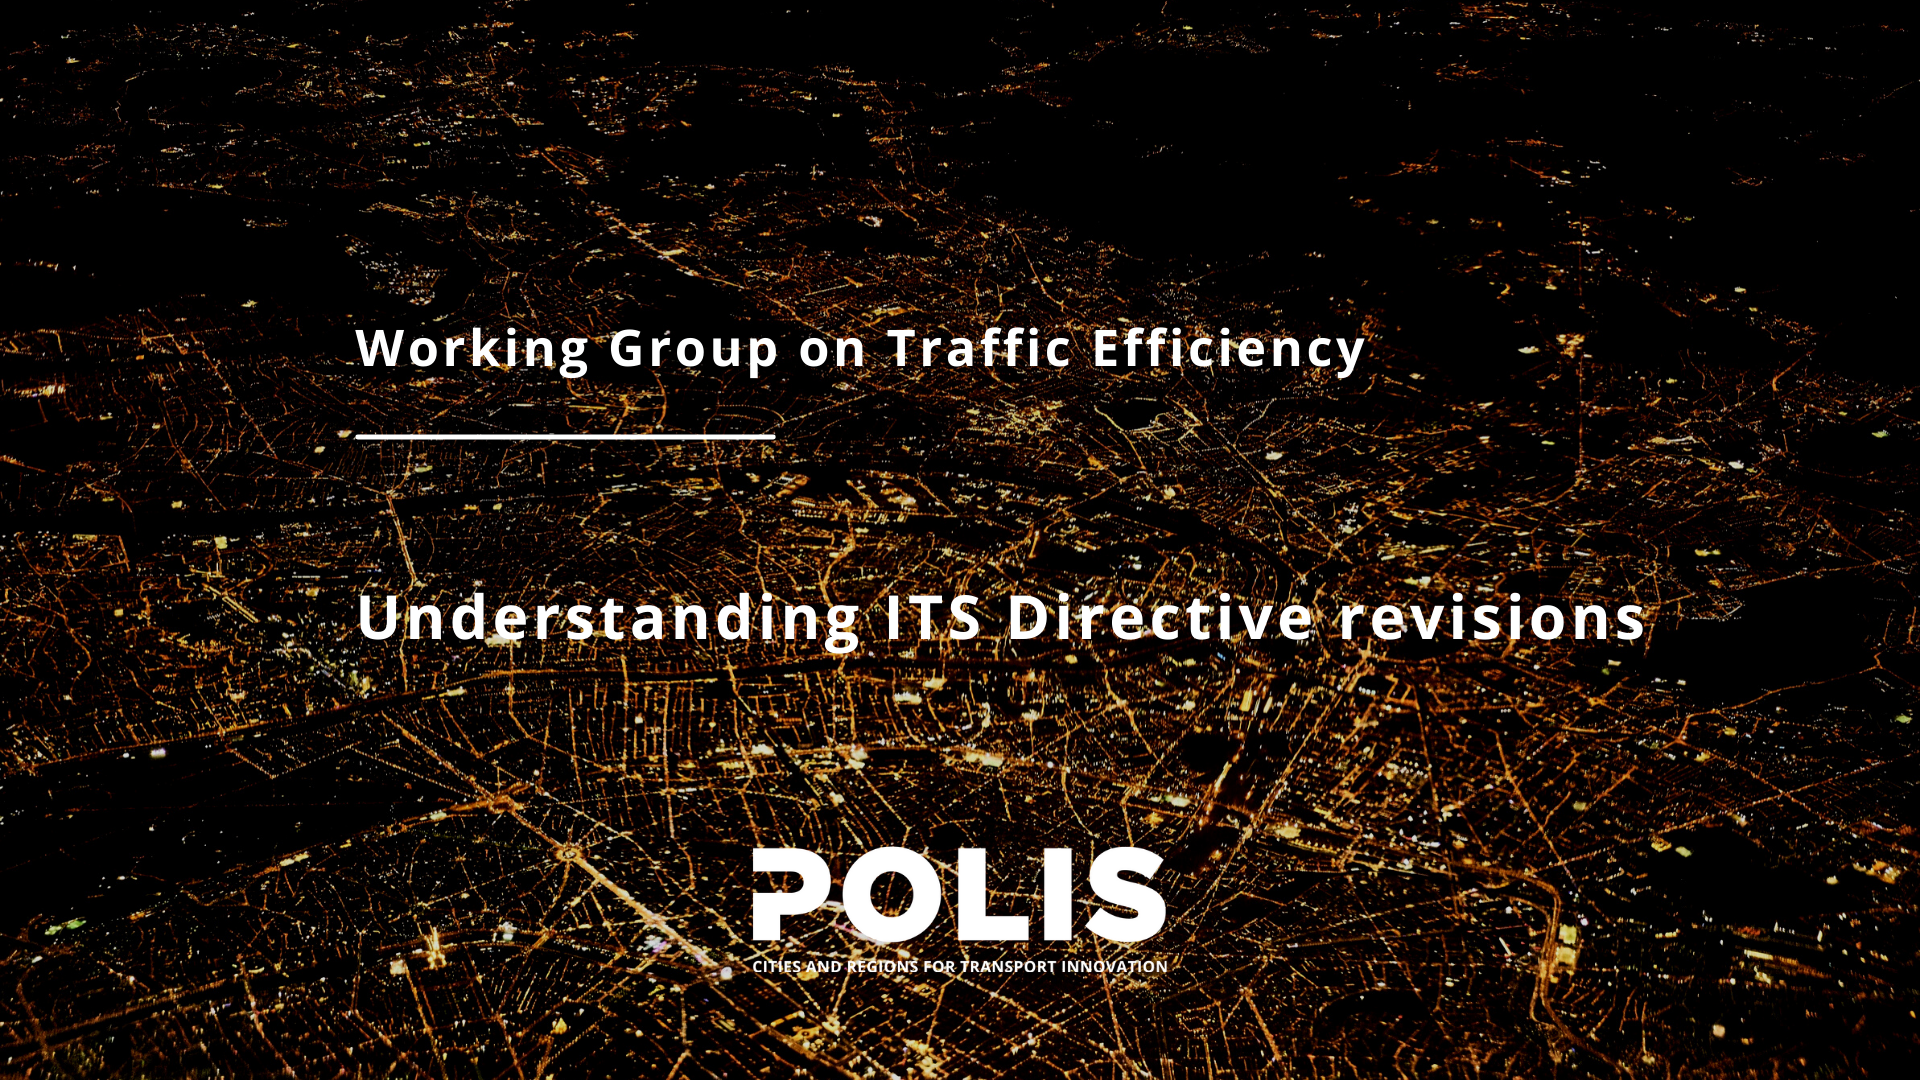 Traffic Efficiency working group examines ITS Directive